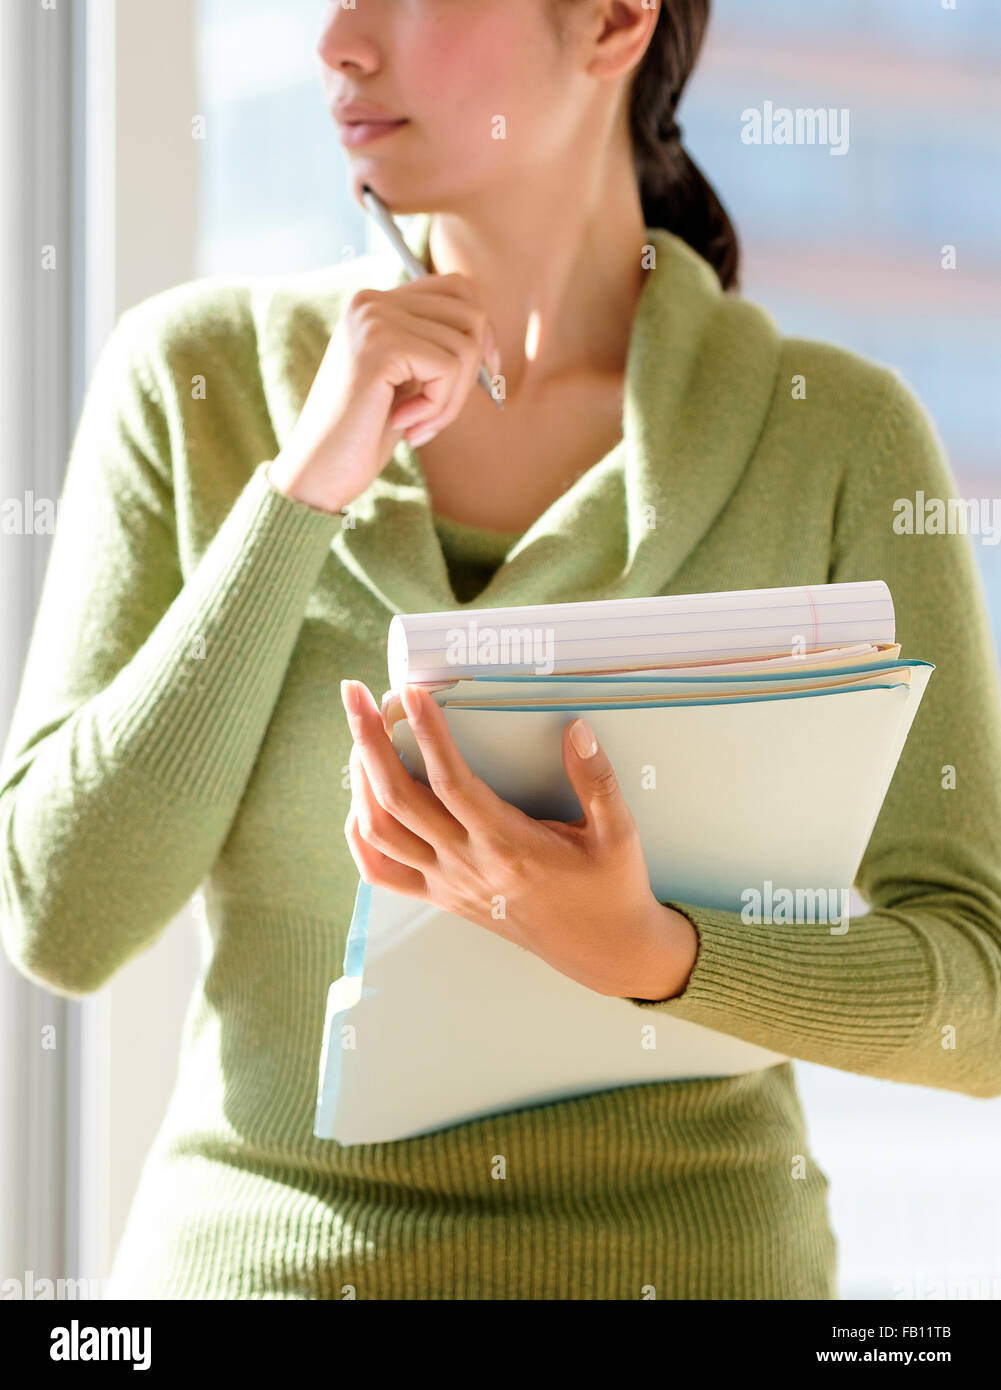 Mid section of business woman holding documents - Stock Image